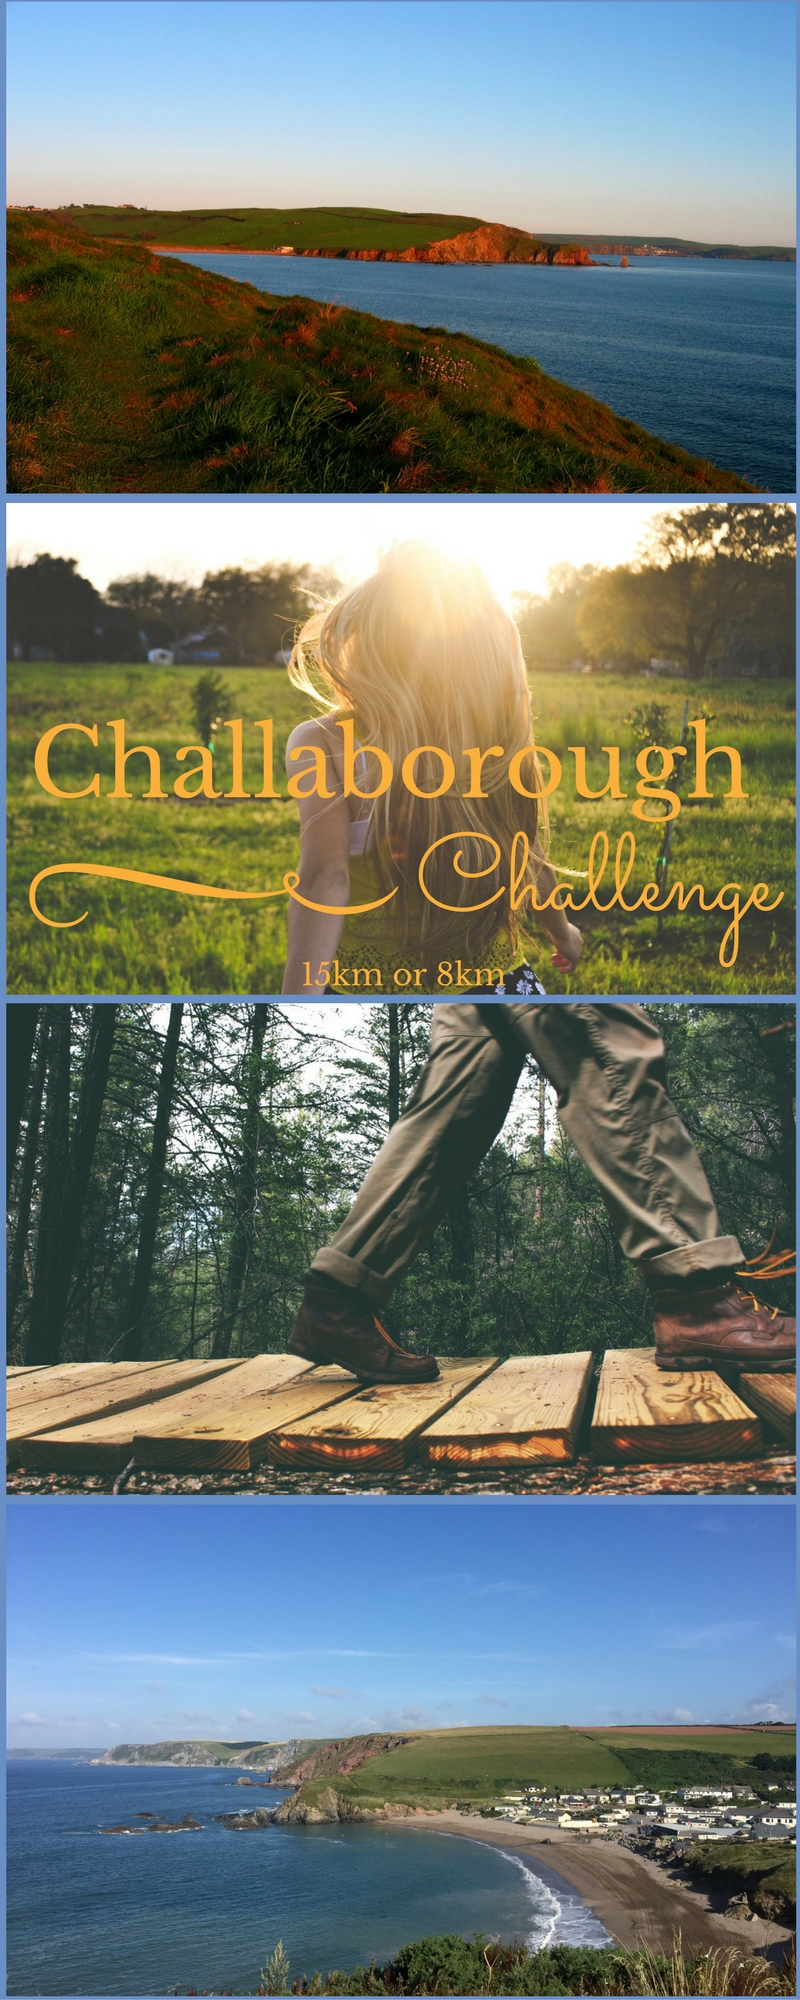 cHALLABOROUGH cHALLENGE (3)